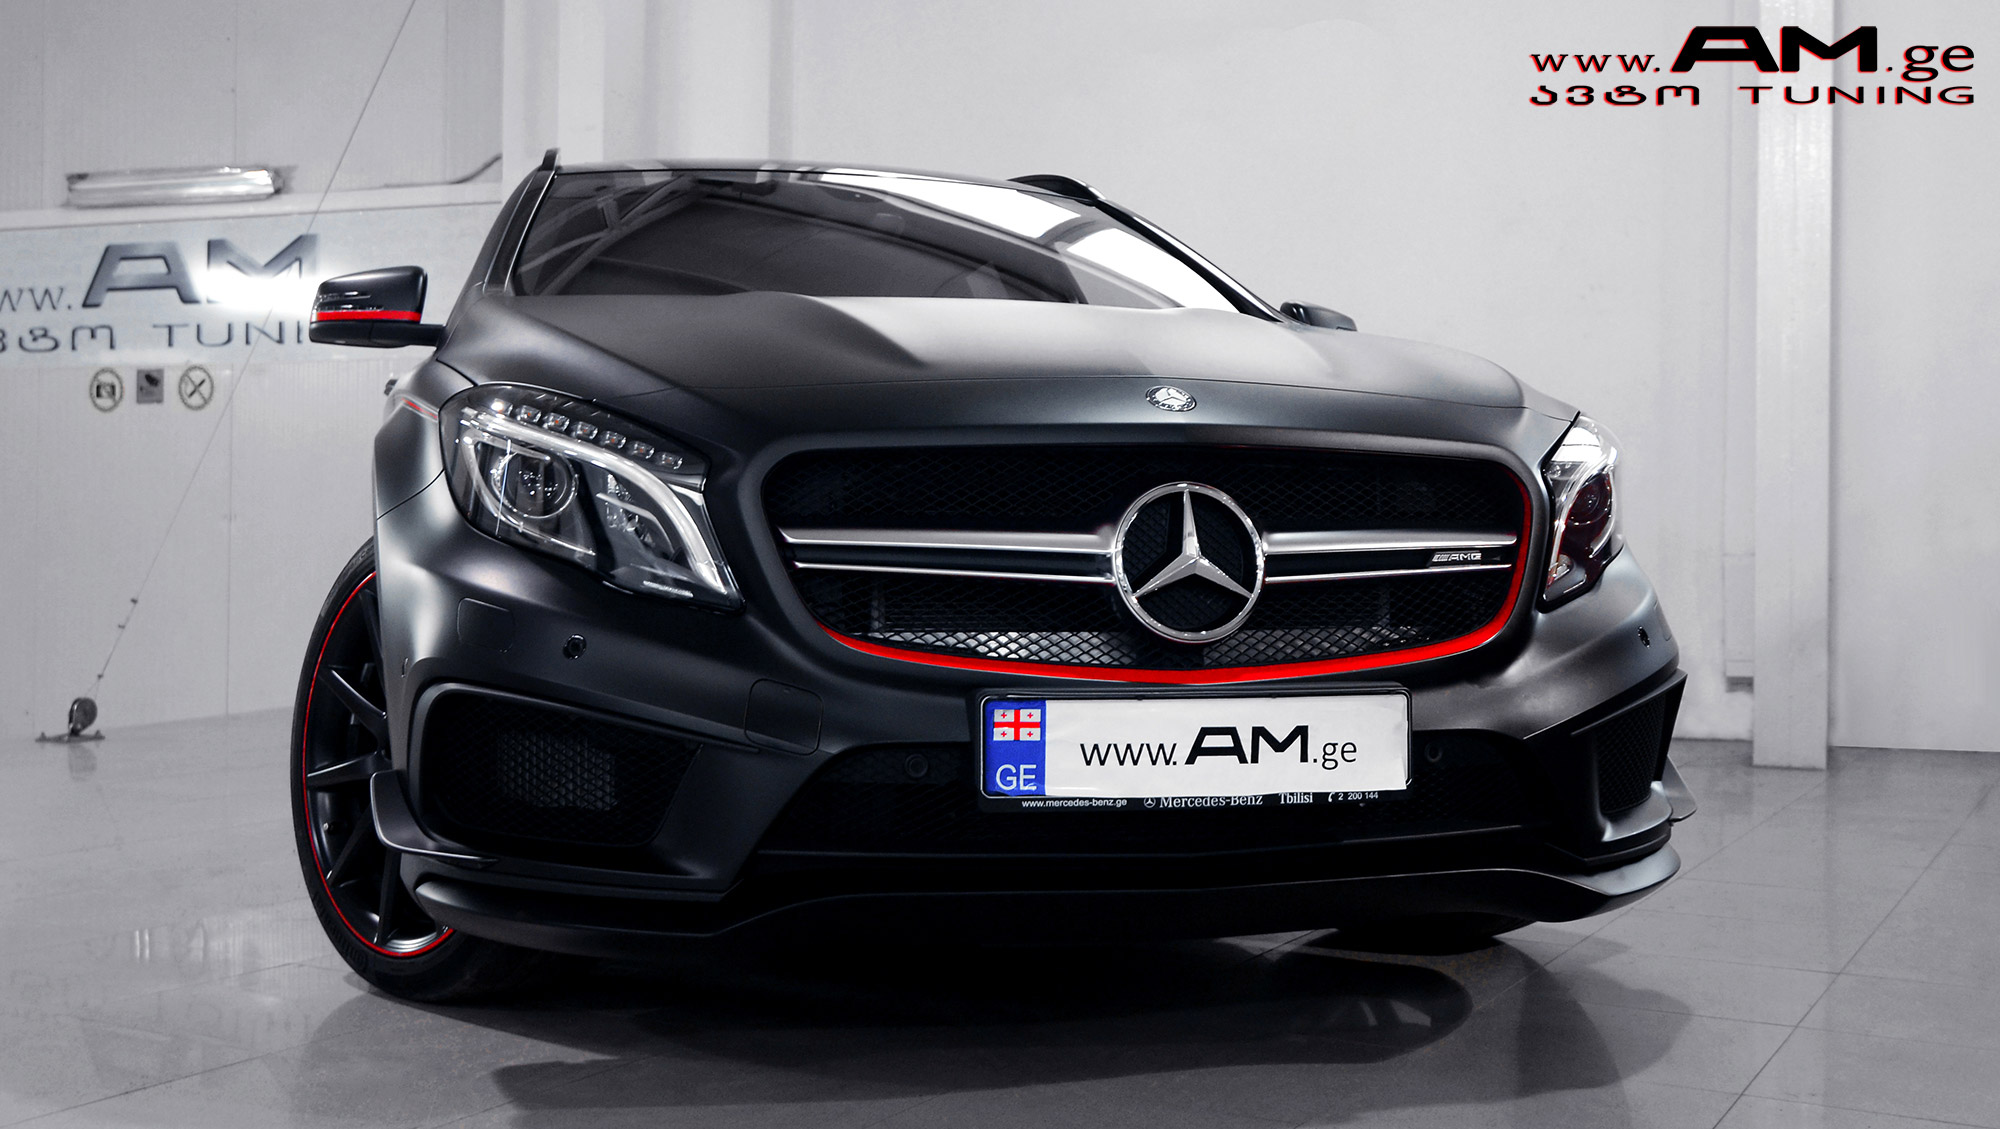 Mb Gla 45 Amg Car Wrapping Auto Am Ge